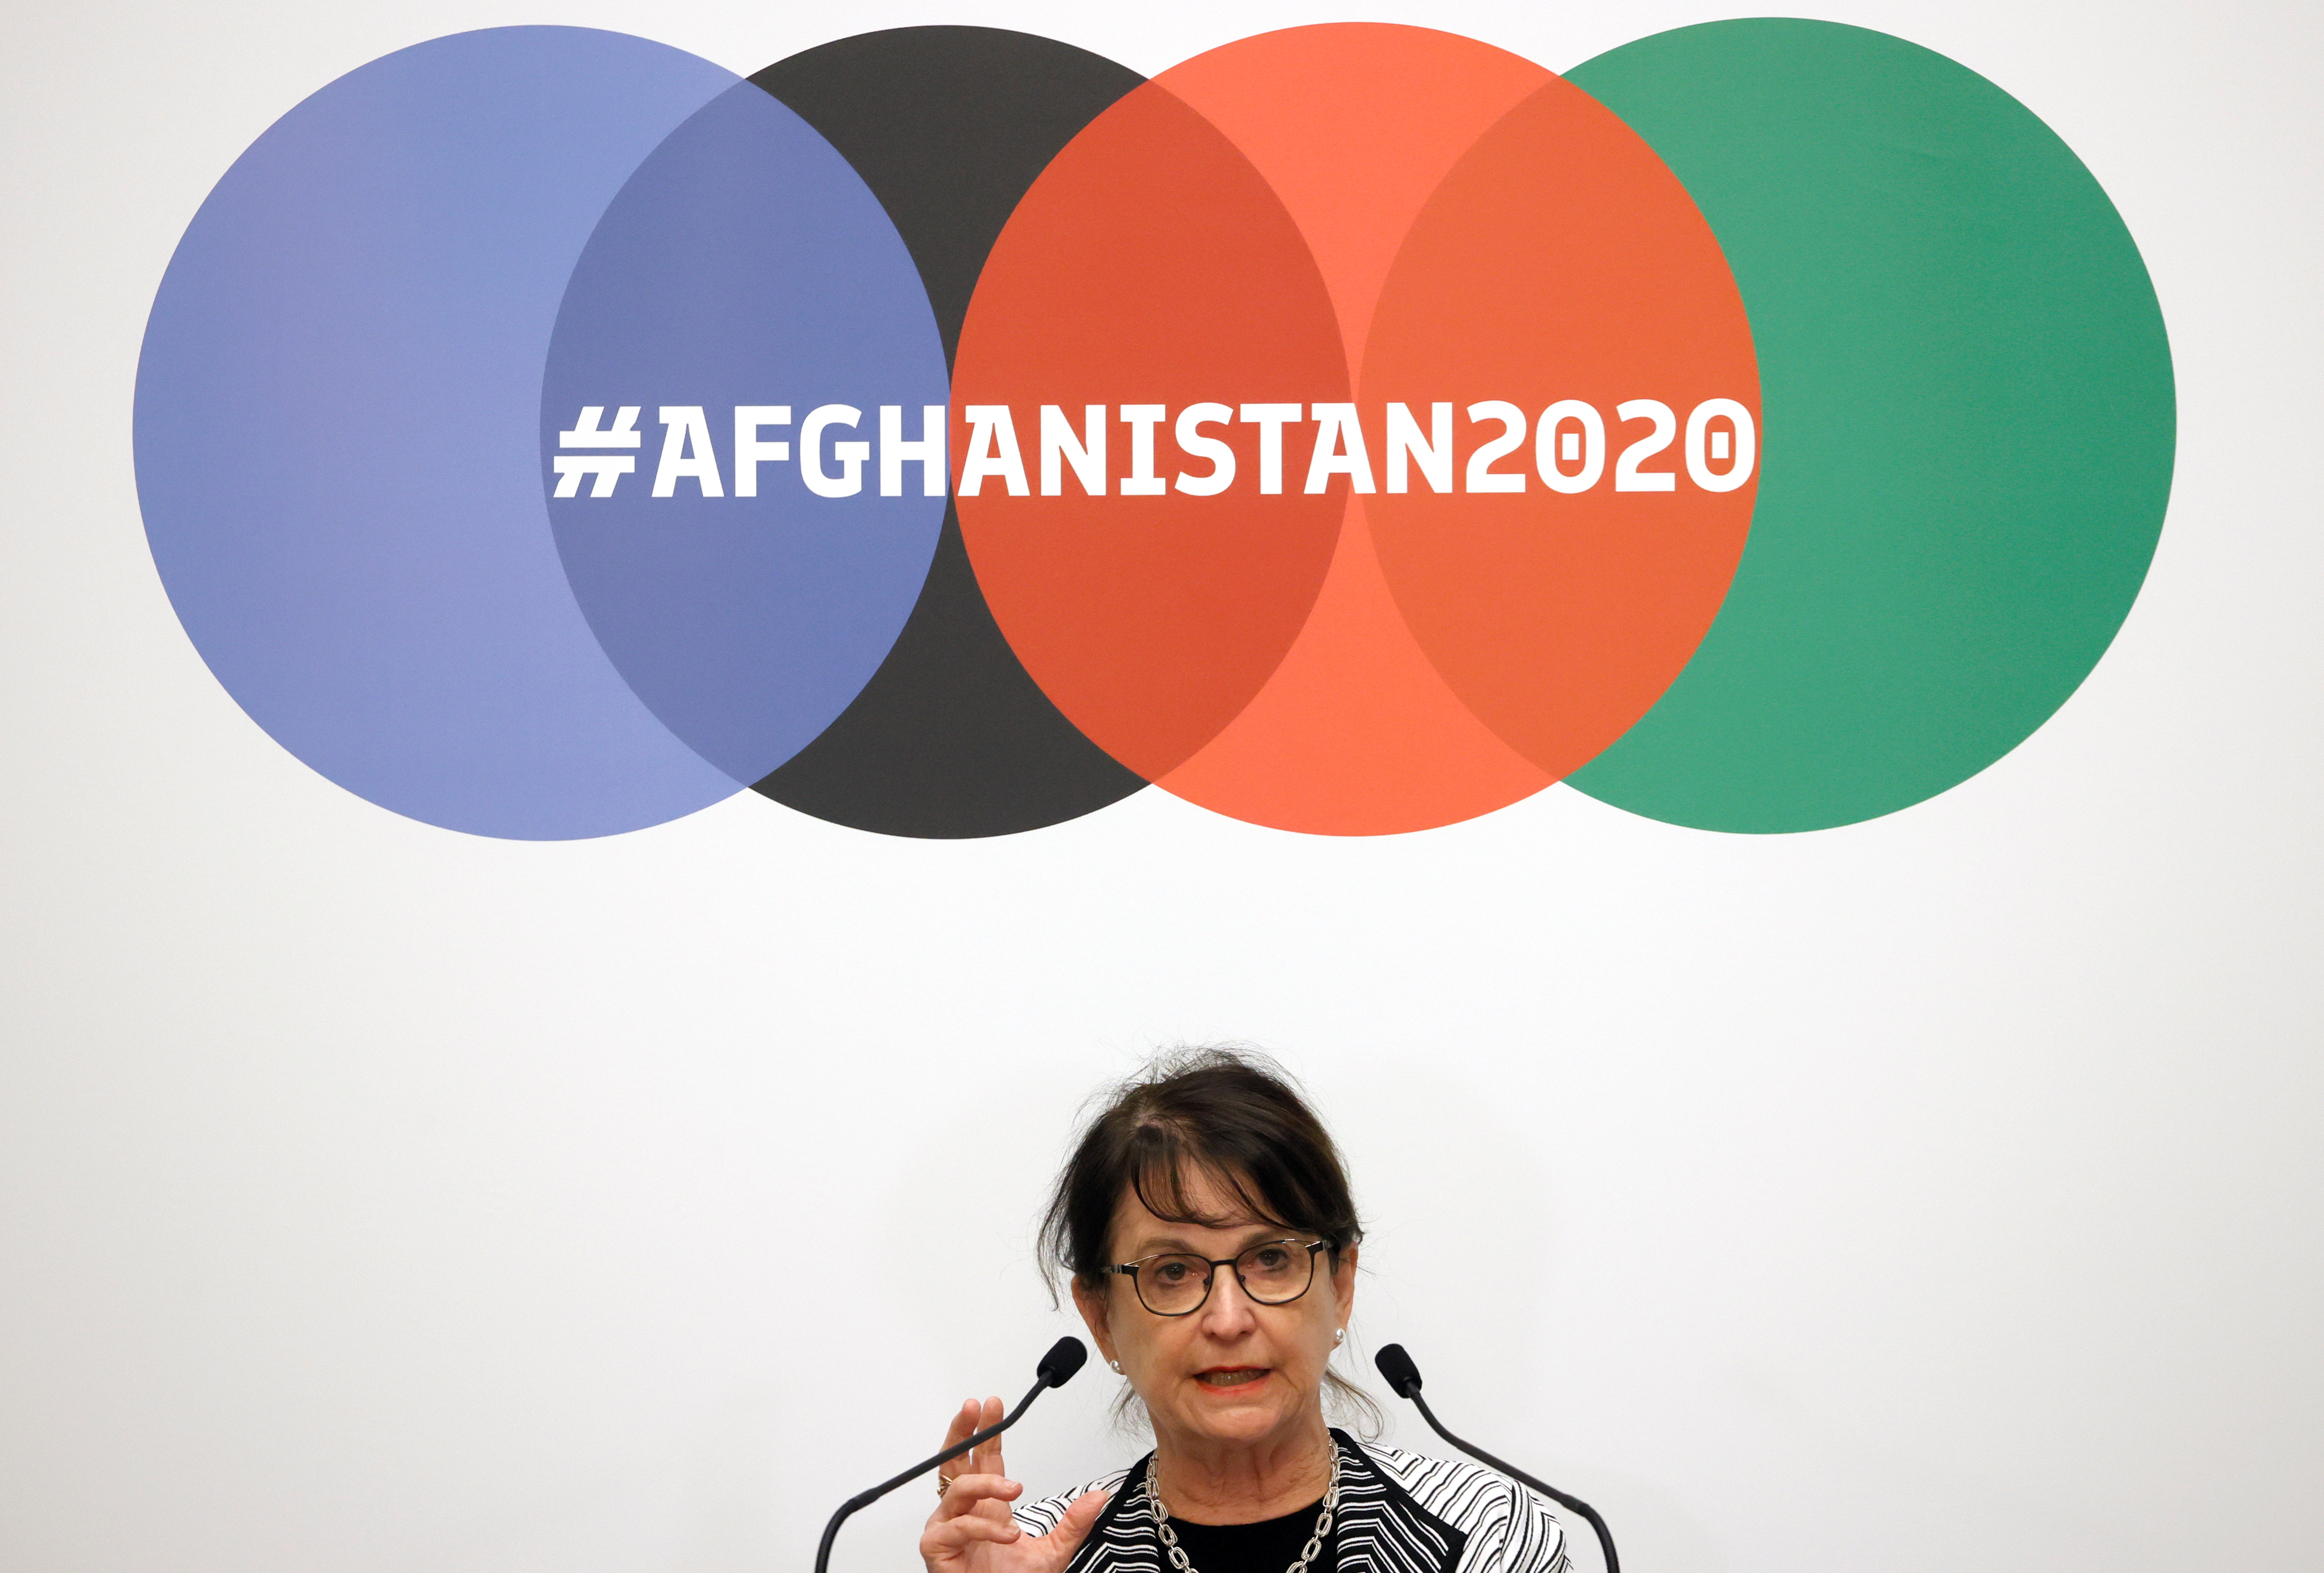 Deborah Lyons, Special Representative of the Secretary General of the United Nations for Afghanistan makes a statement during the 2020 Afghanistan Conference at the United Nations in Geneva, Switzerland November 24, 2020. REUTERS/Denis Balibouse